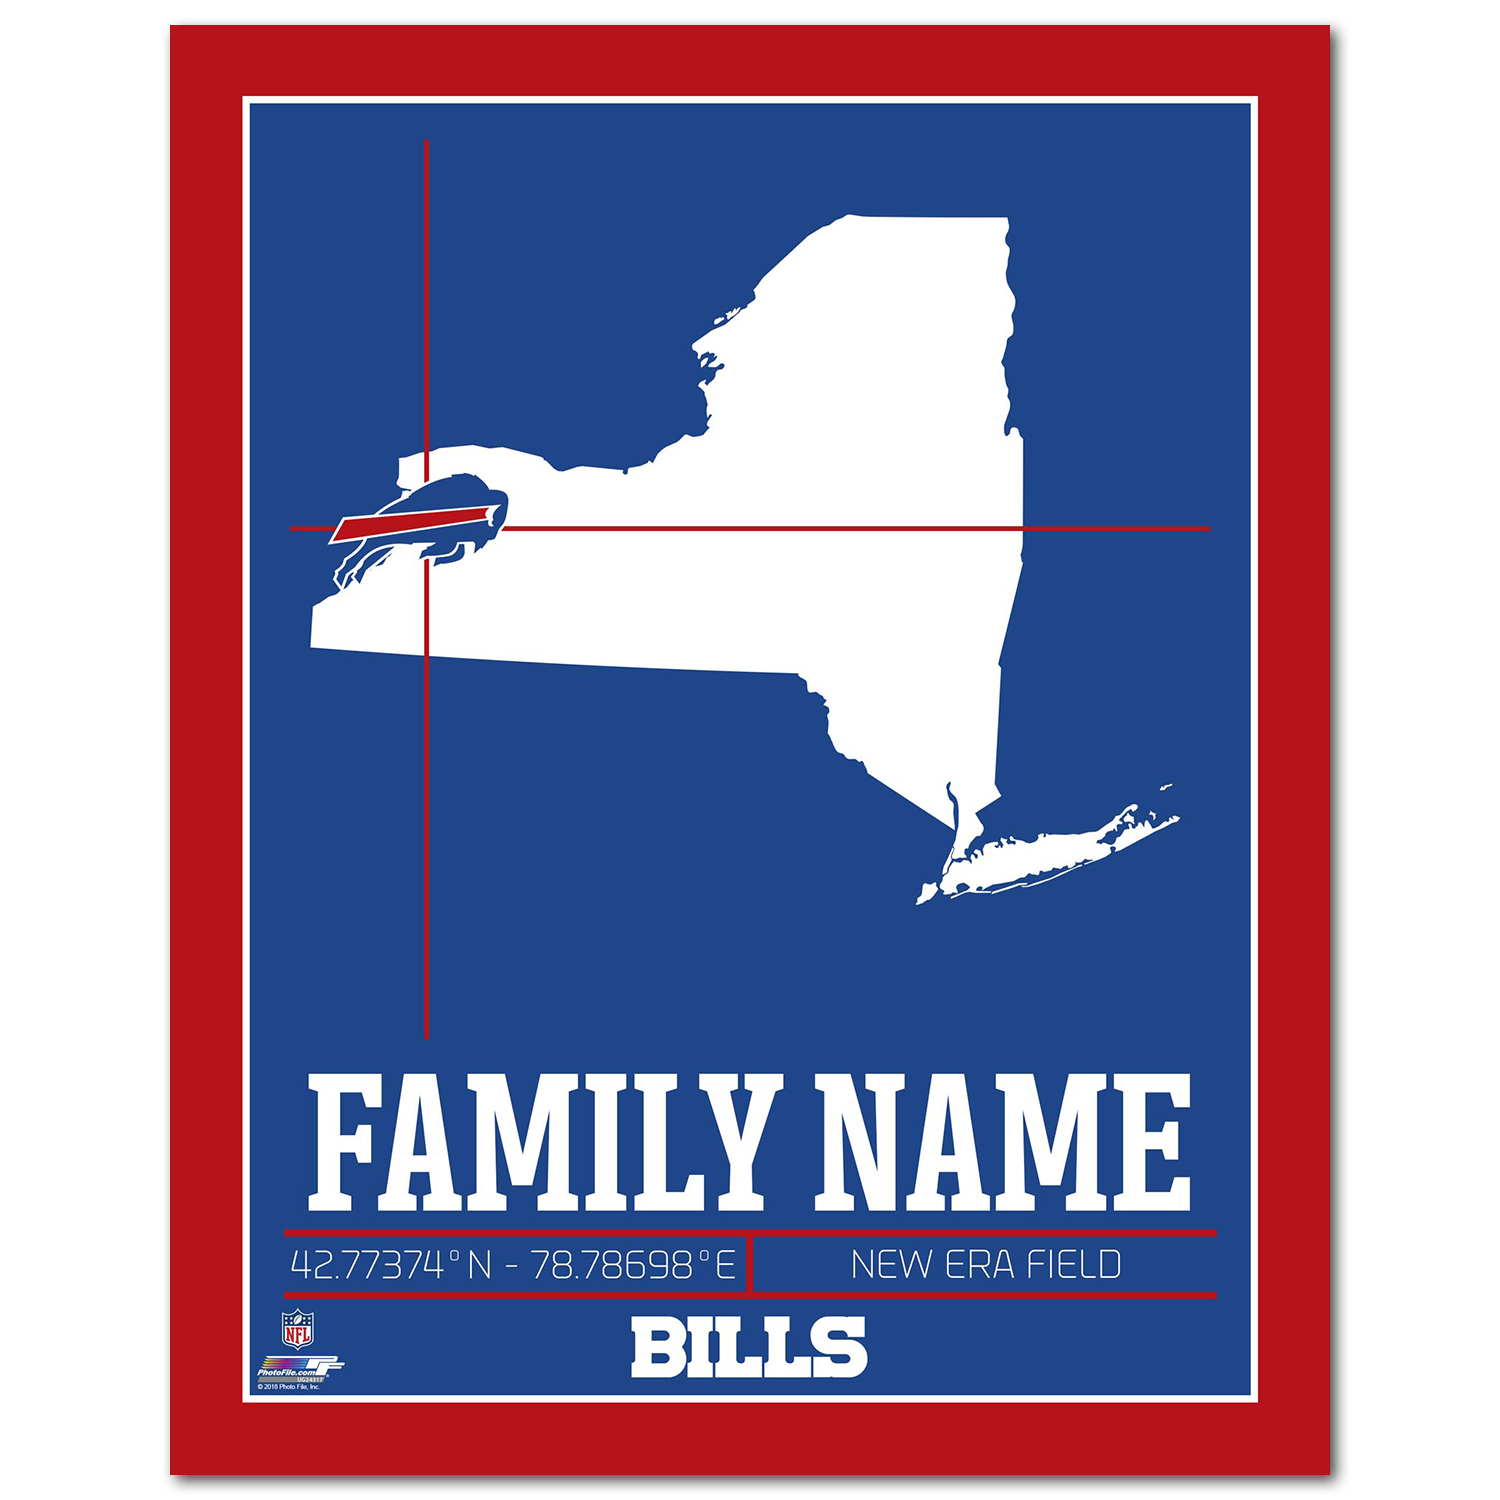 Personalized Nfl Buffalo Bills Family Name Stadium With